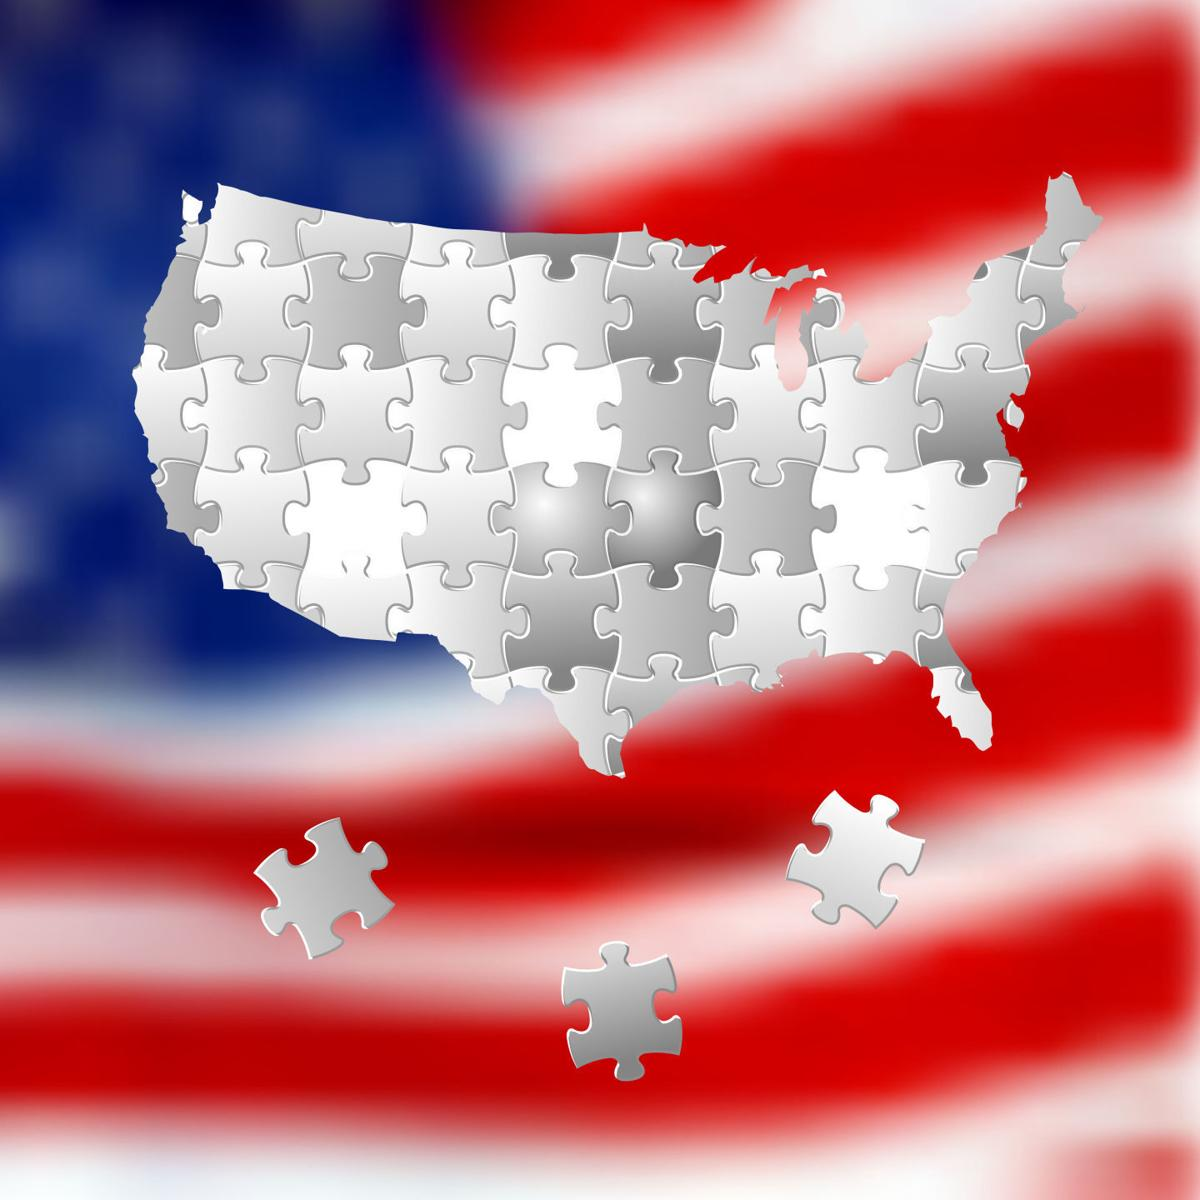 Vote for America, election background made from